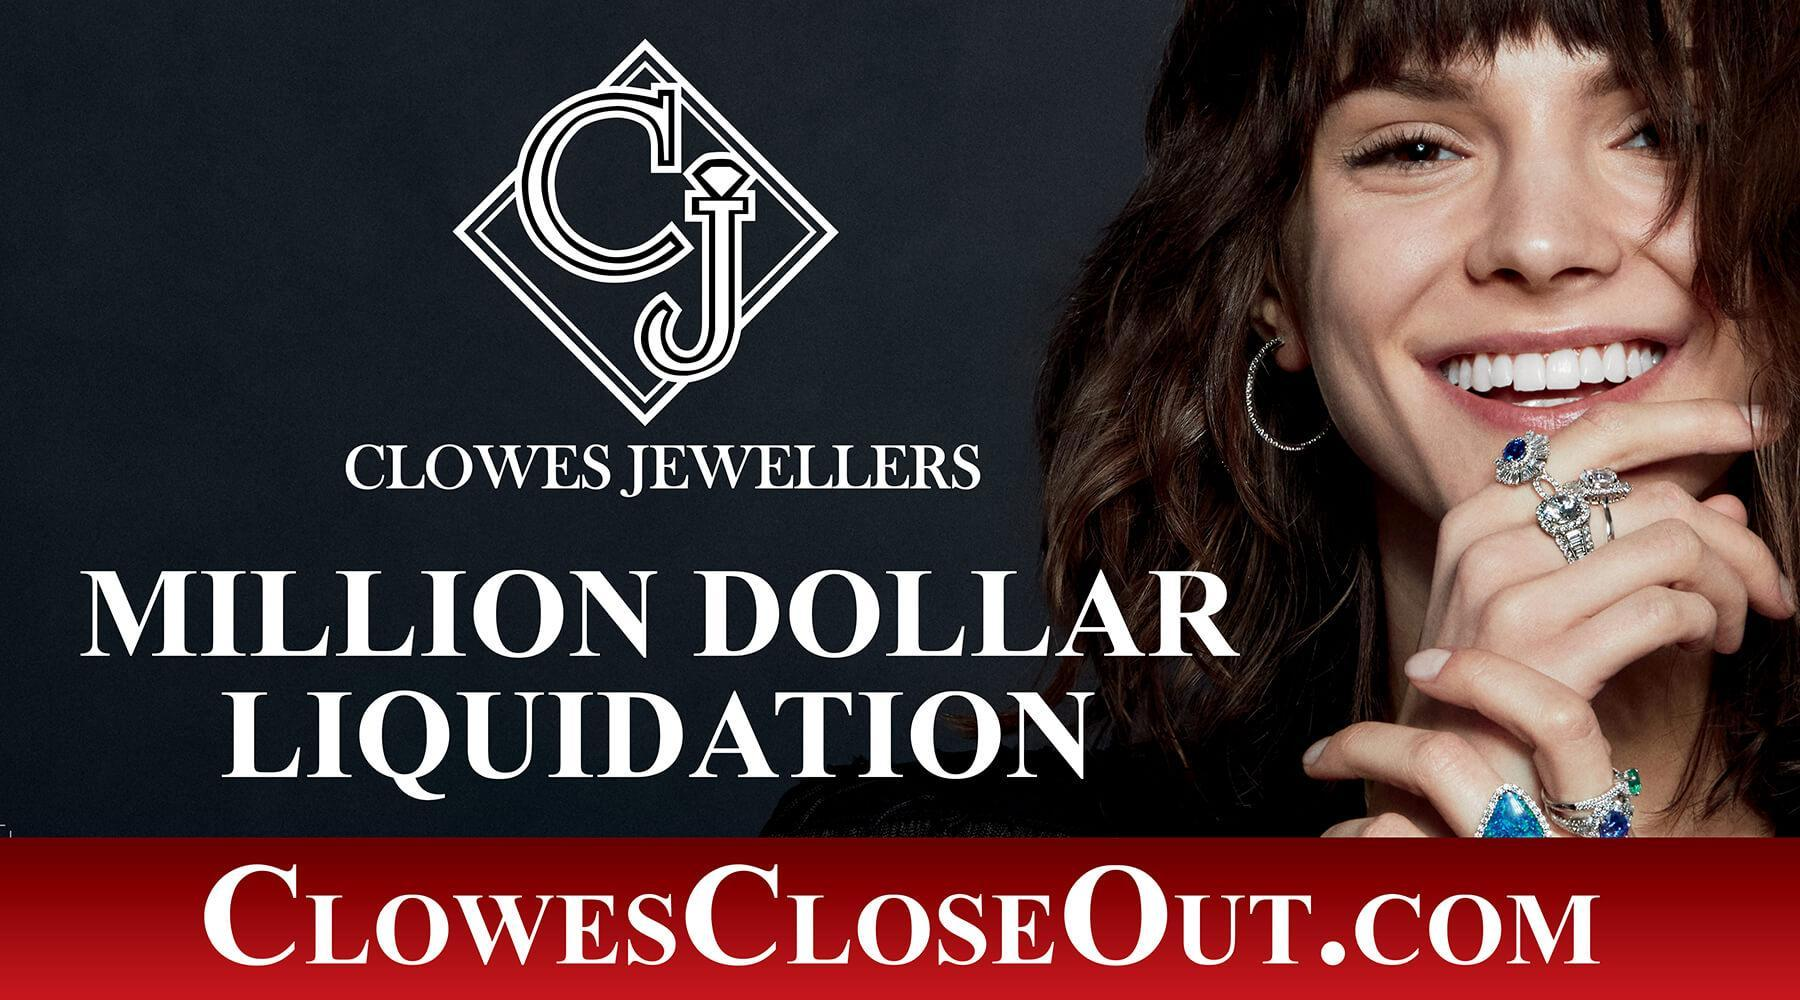 clowes jewellers closeout liquidation sale offers designer jewellery at up to 60 off newswire. Black Bedroom Furniture Sets. Home Design Ideas